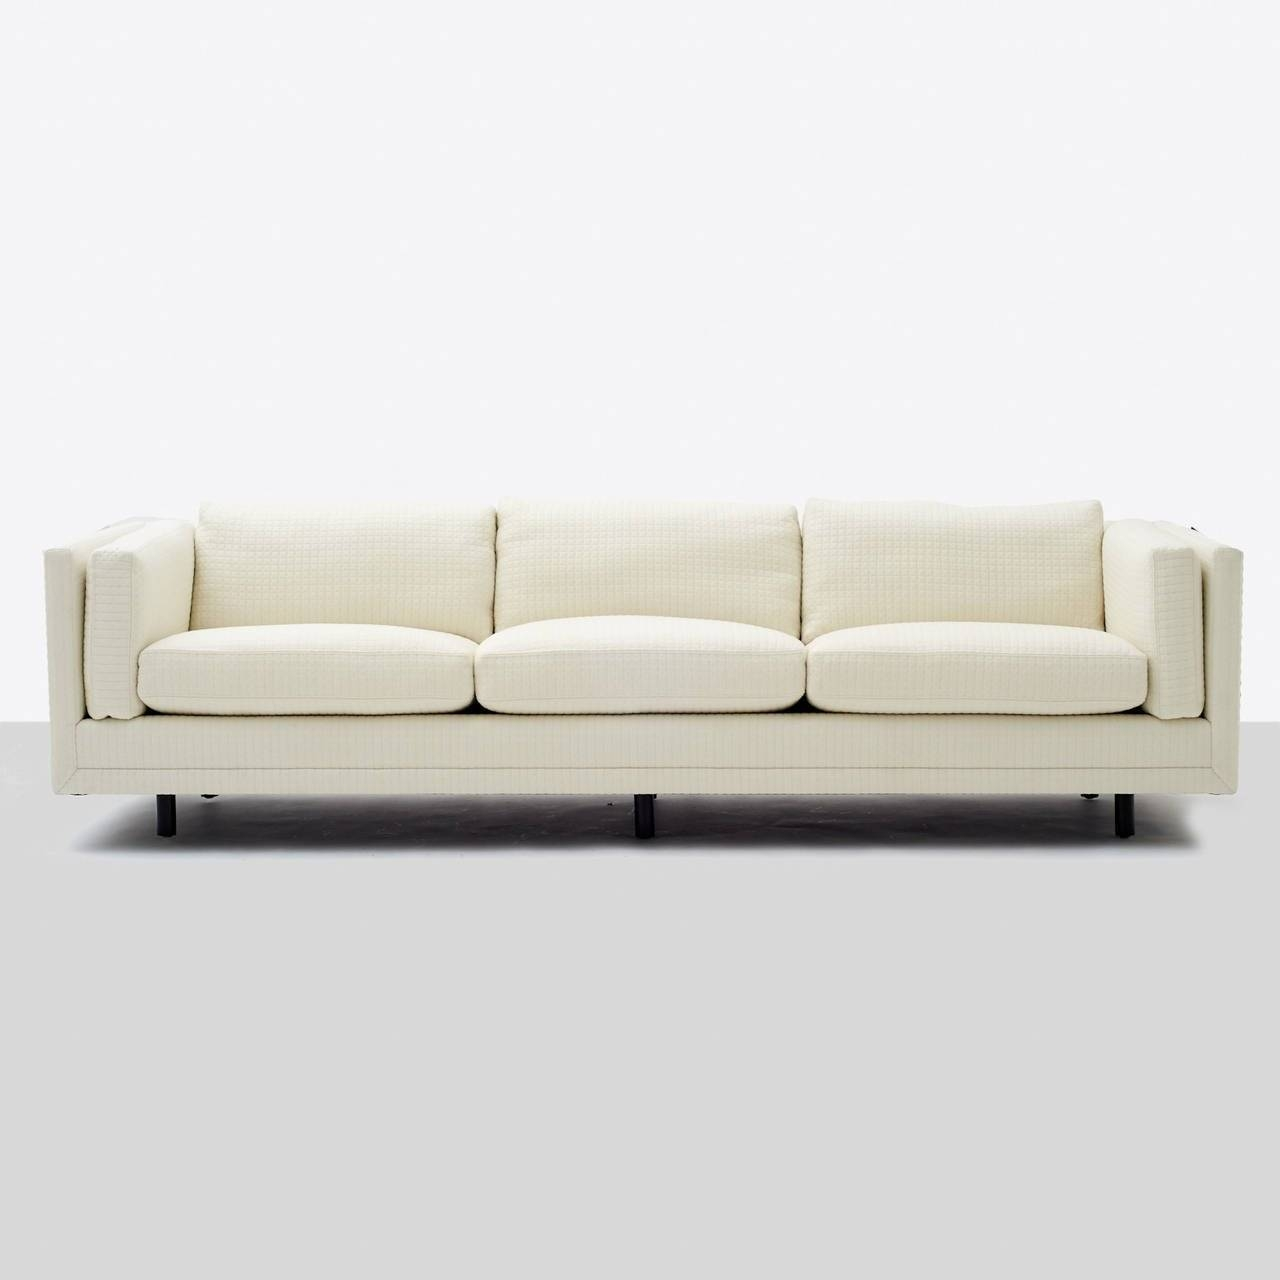 Good Tuxedo Sectional Sofa 33 With Additional Albany Industries for Albany Industries Sectional Sofa (Image 23 of 30)